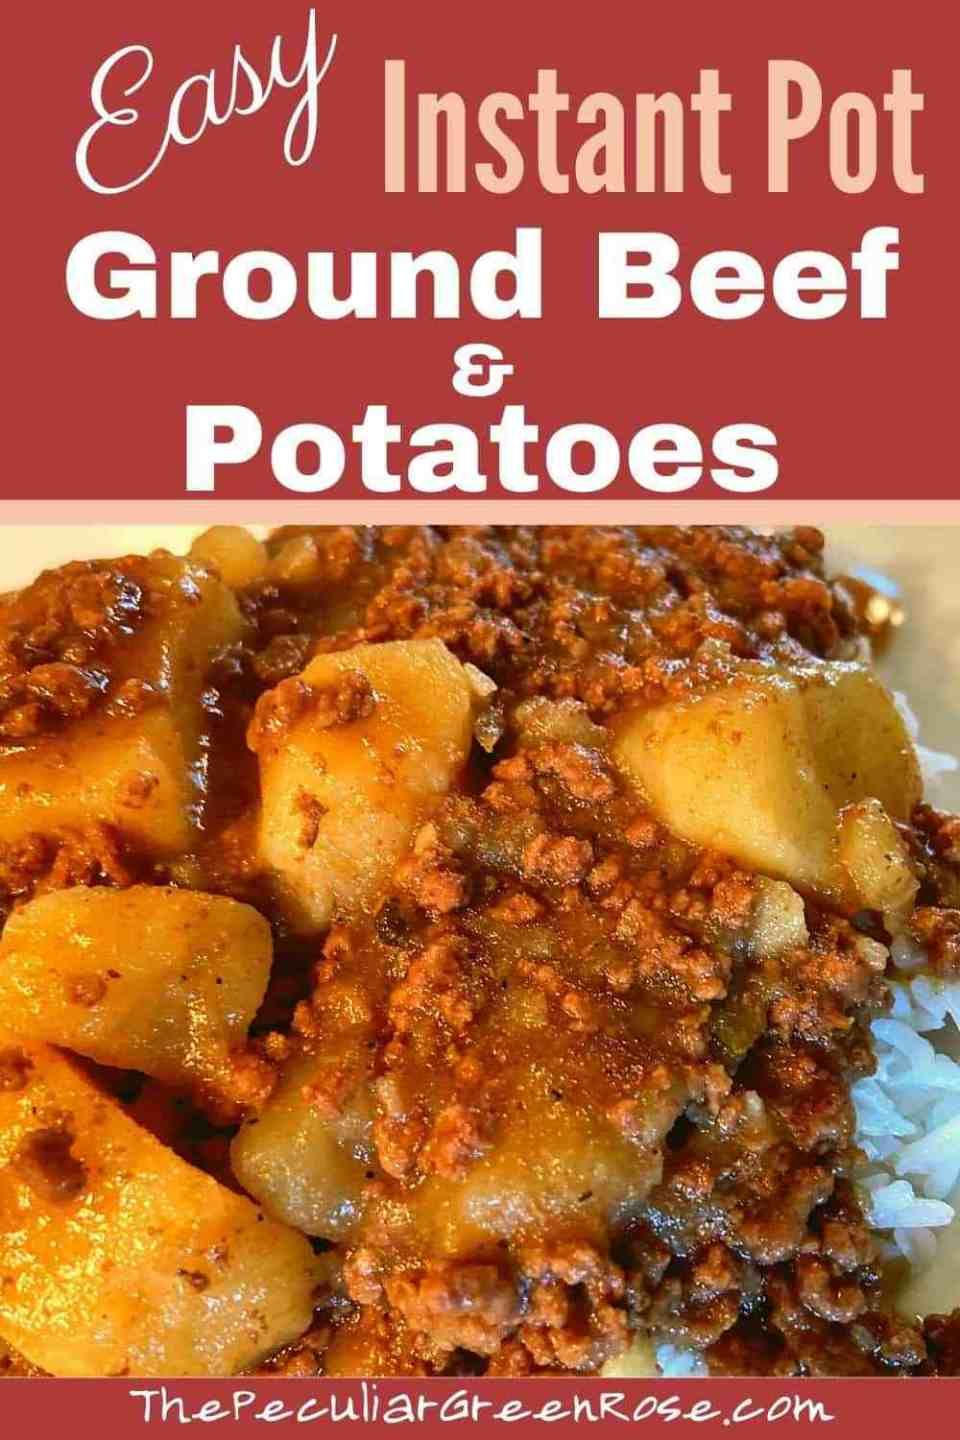 Instant Pot Ground Beef And Potatoes The Peculiar Green Rose Recipe In 2020 Beef And Potatoes Ground Beef And Potatoes Healthy Beef Recipes